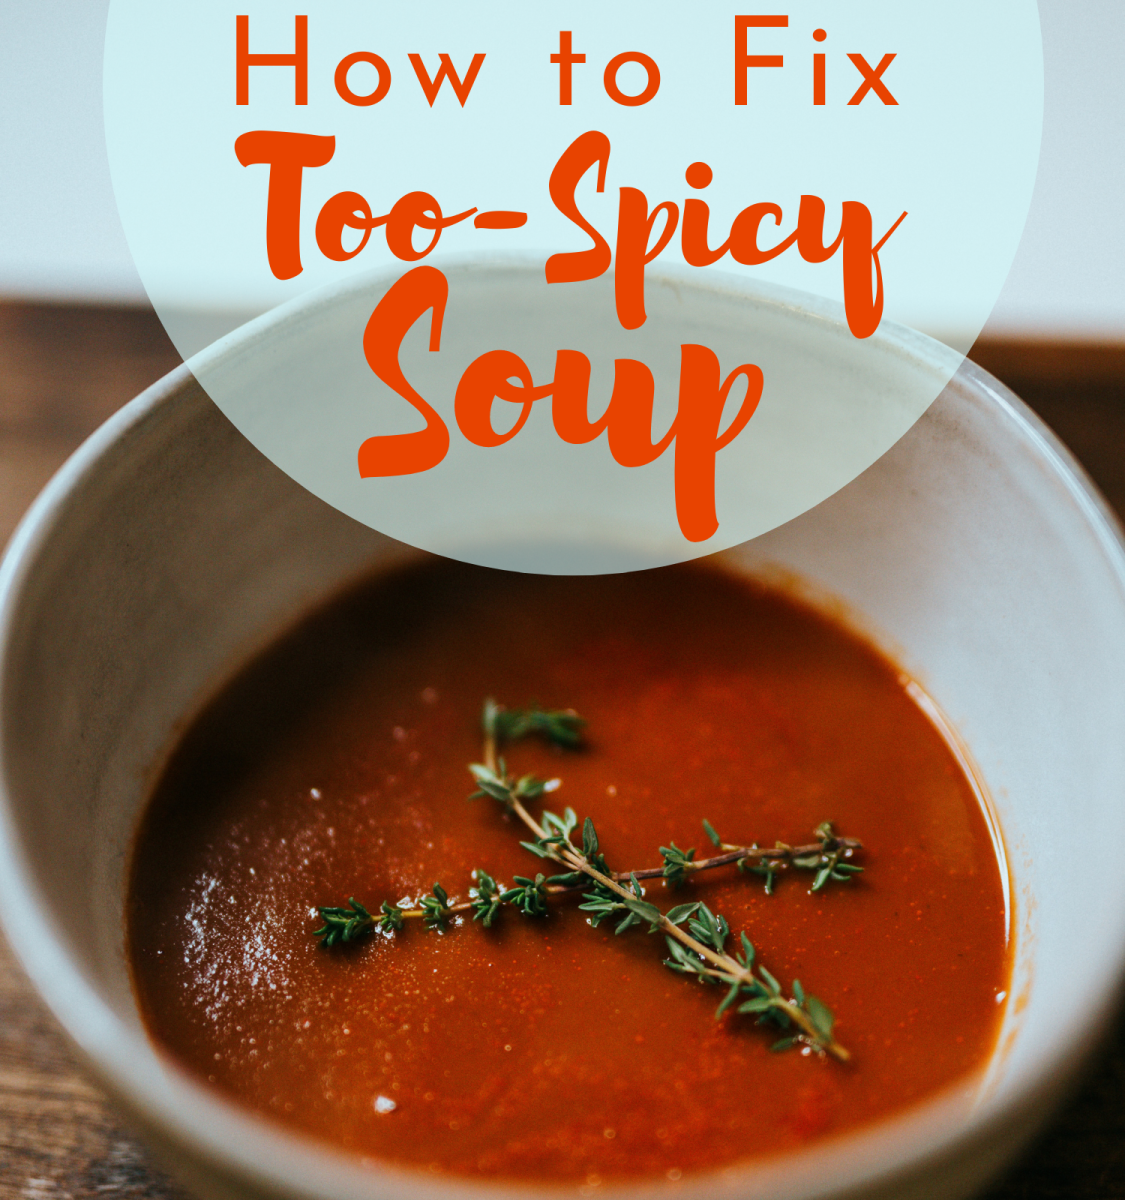 My Soup Is Too Spicy! How Do I Fix It?